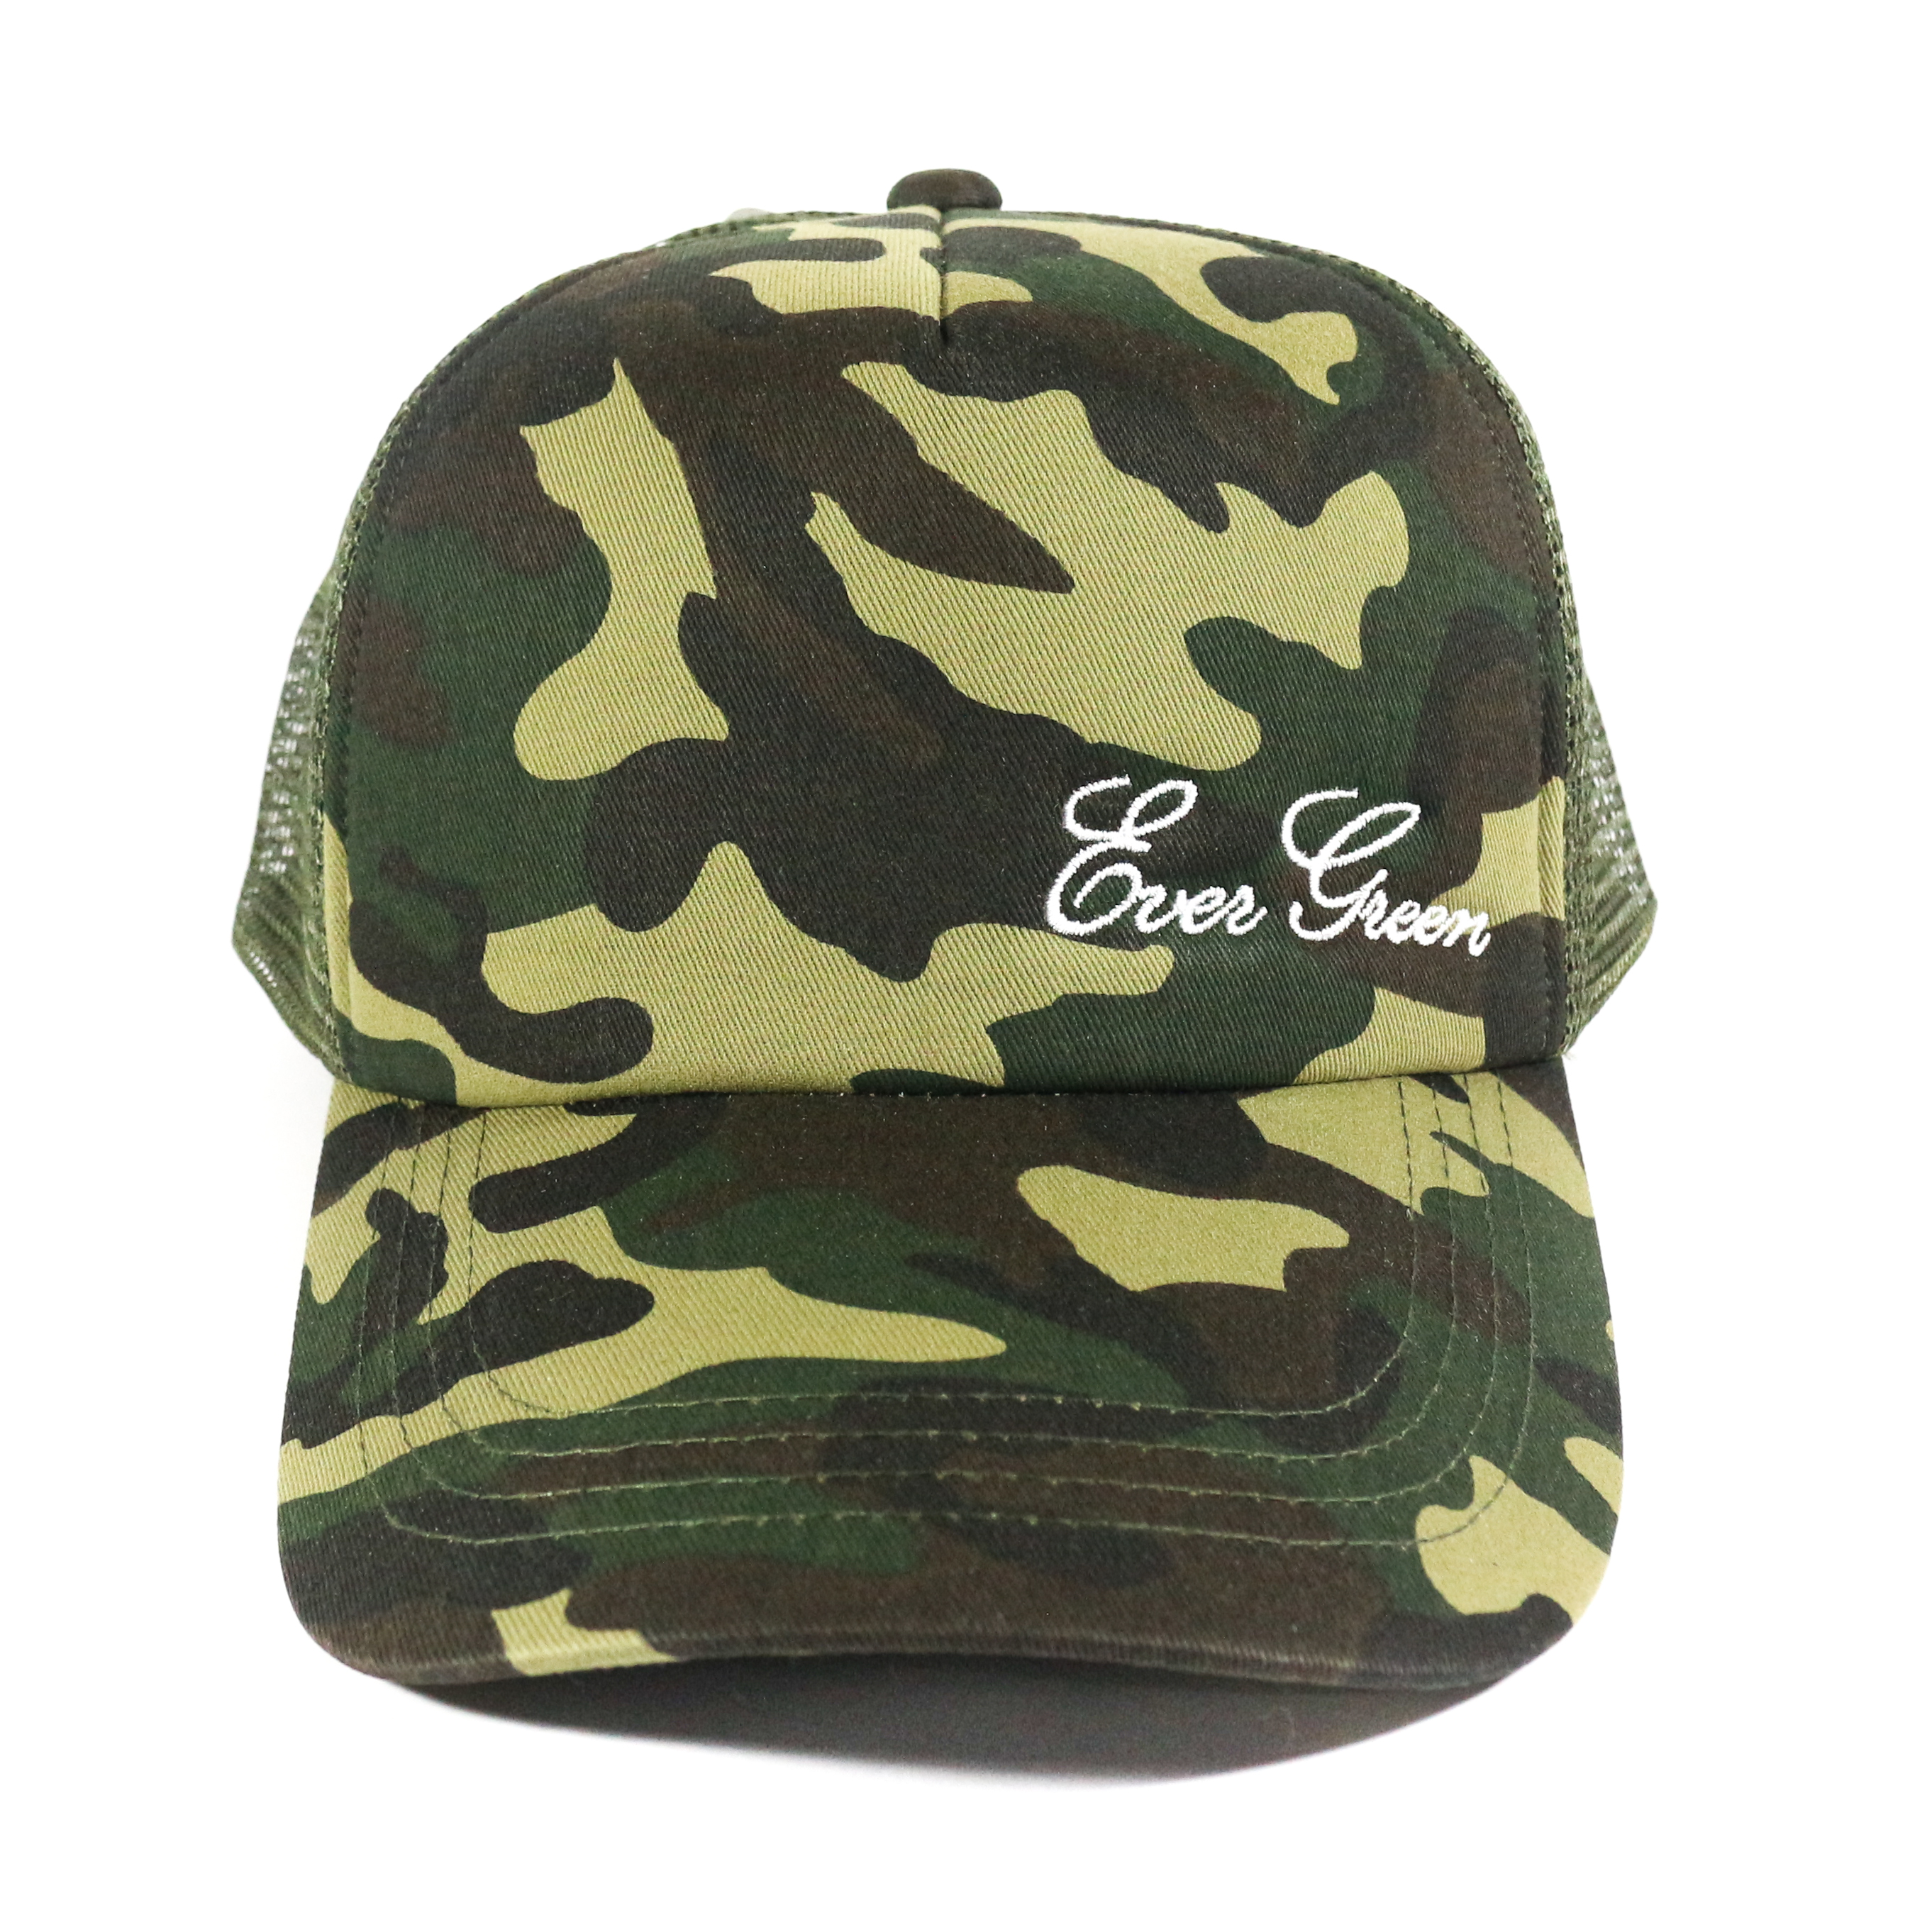 Evergreen Cap Mesh Cap Original Japan Free Size Green Camou (9927)